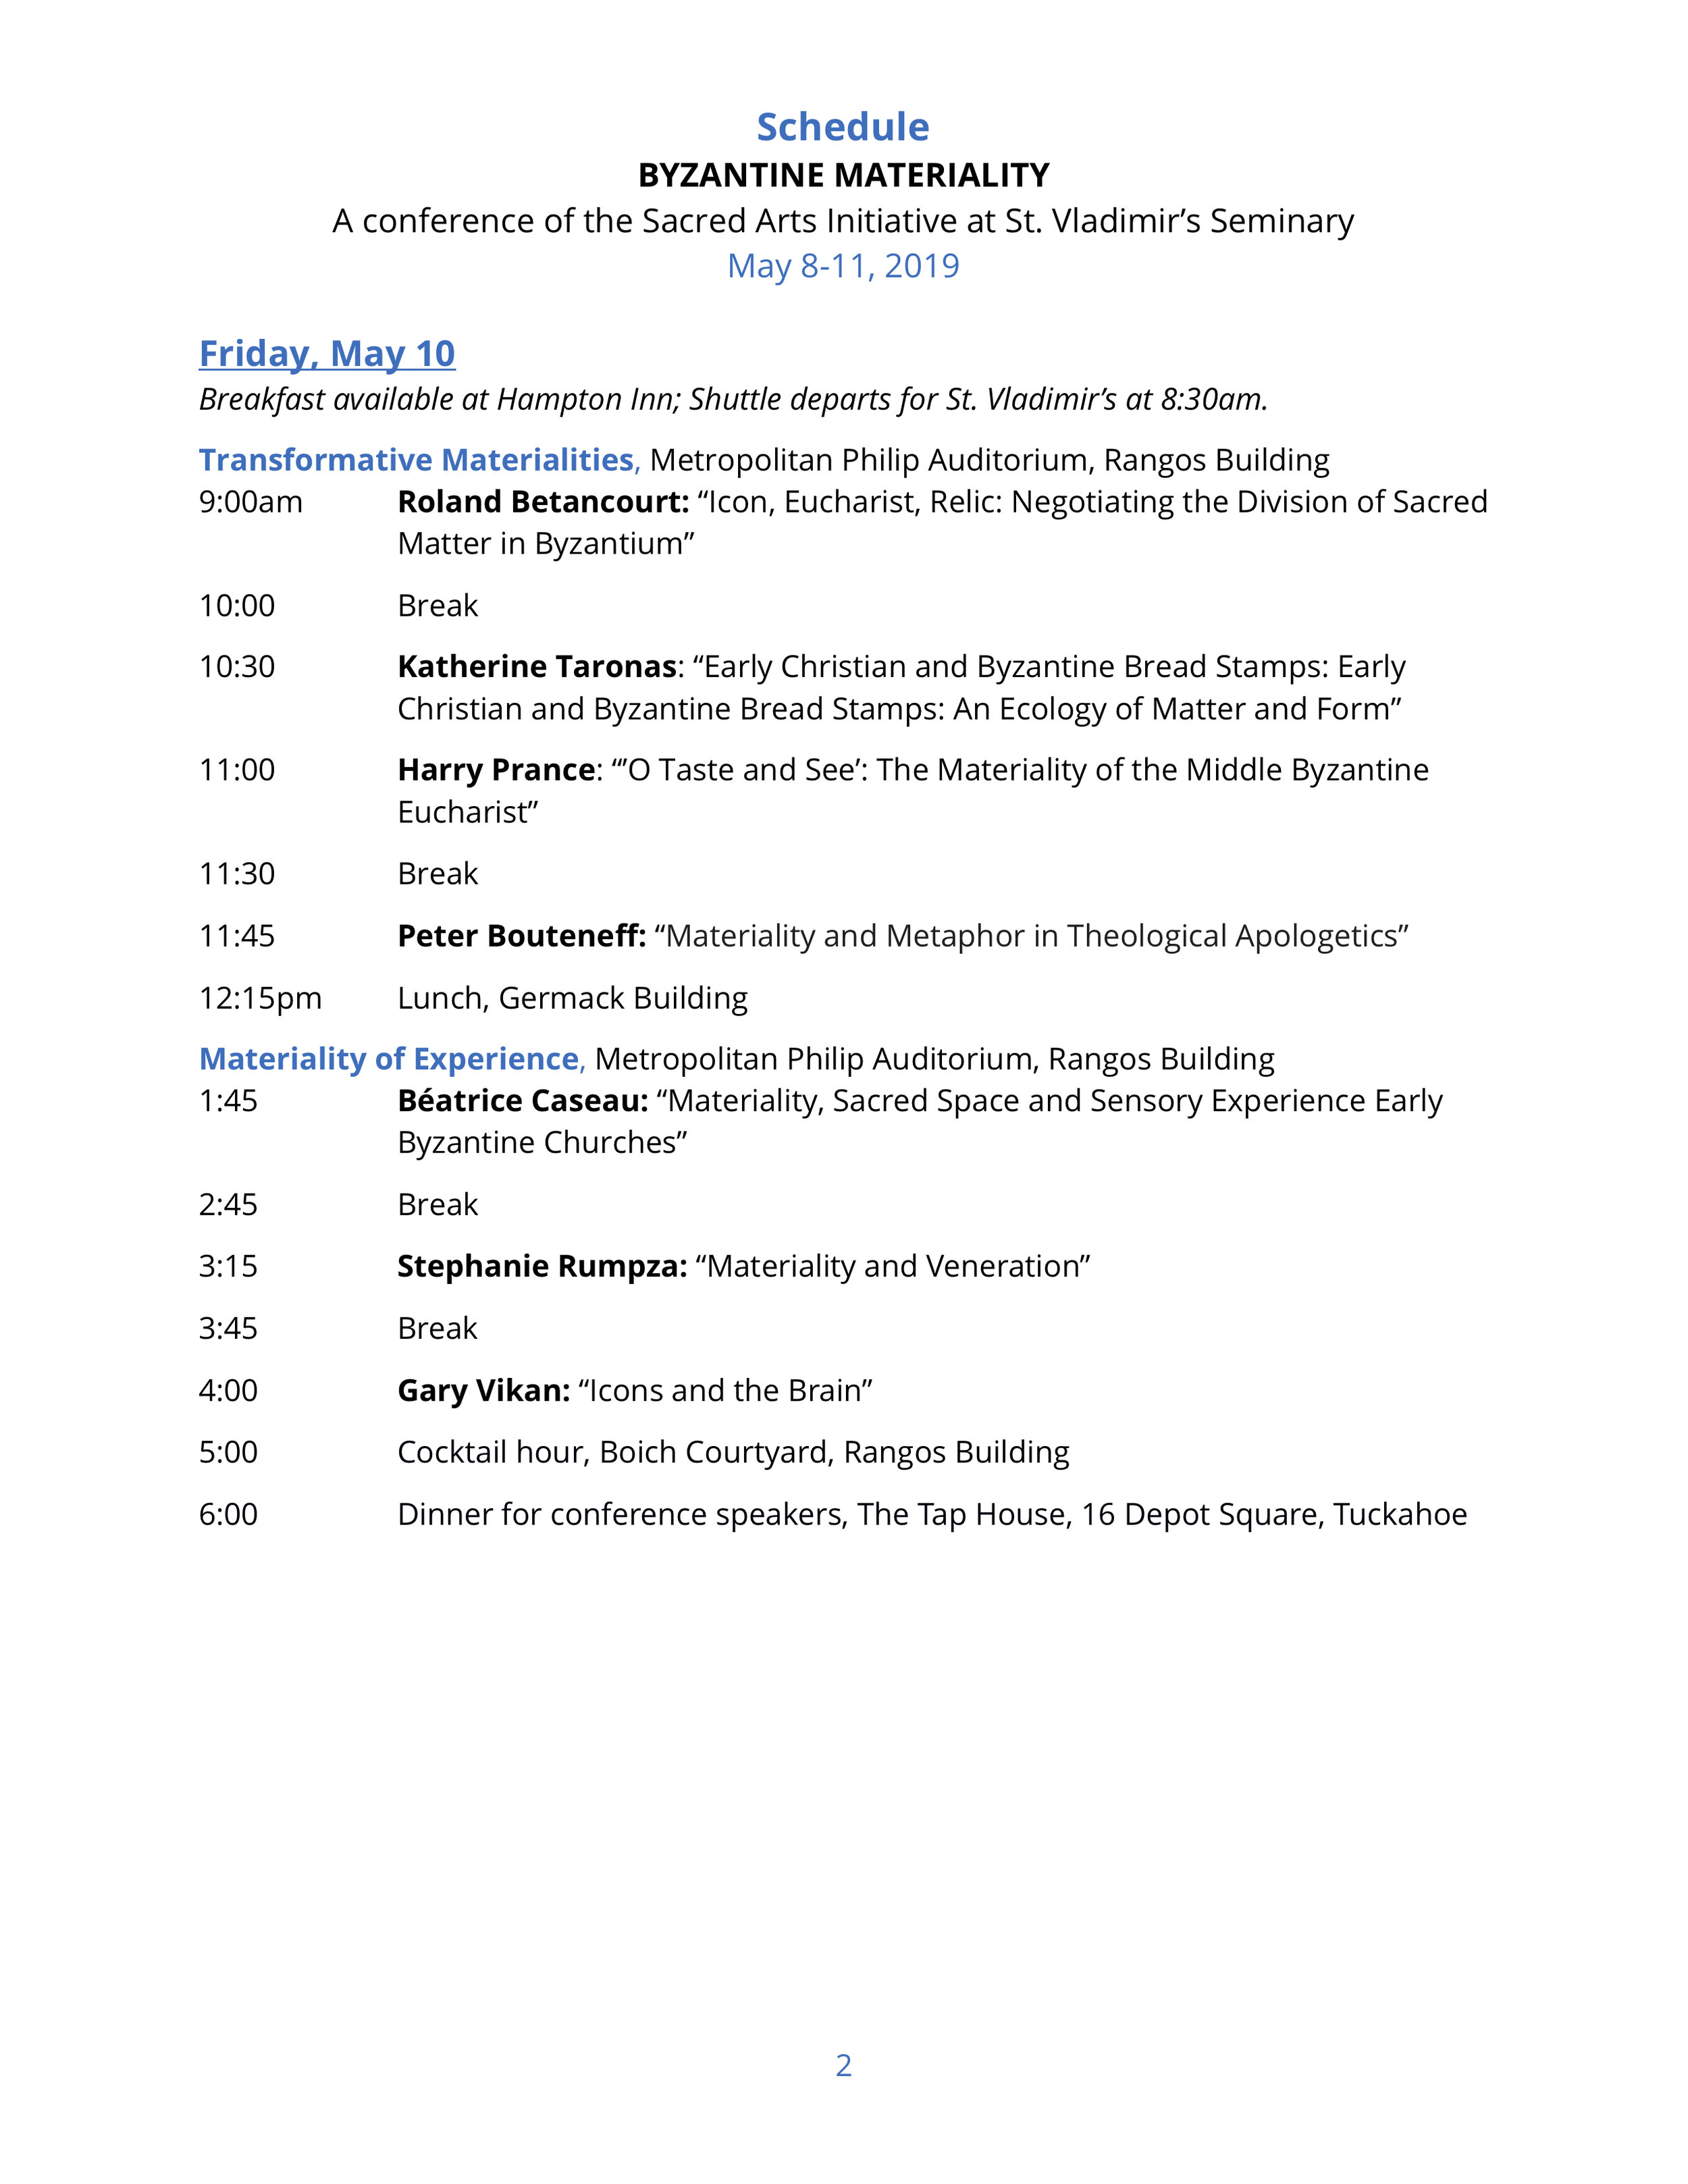 Byzantine Materiality Conference Schedule 2.jpg